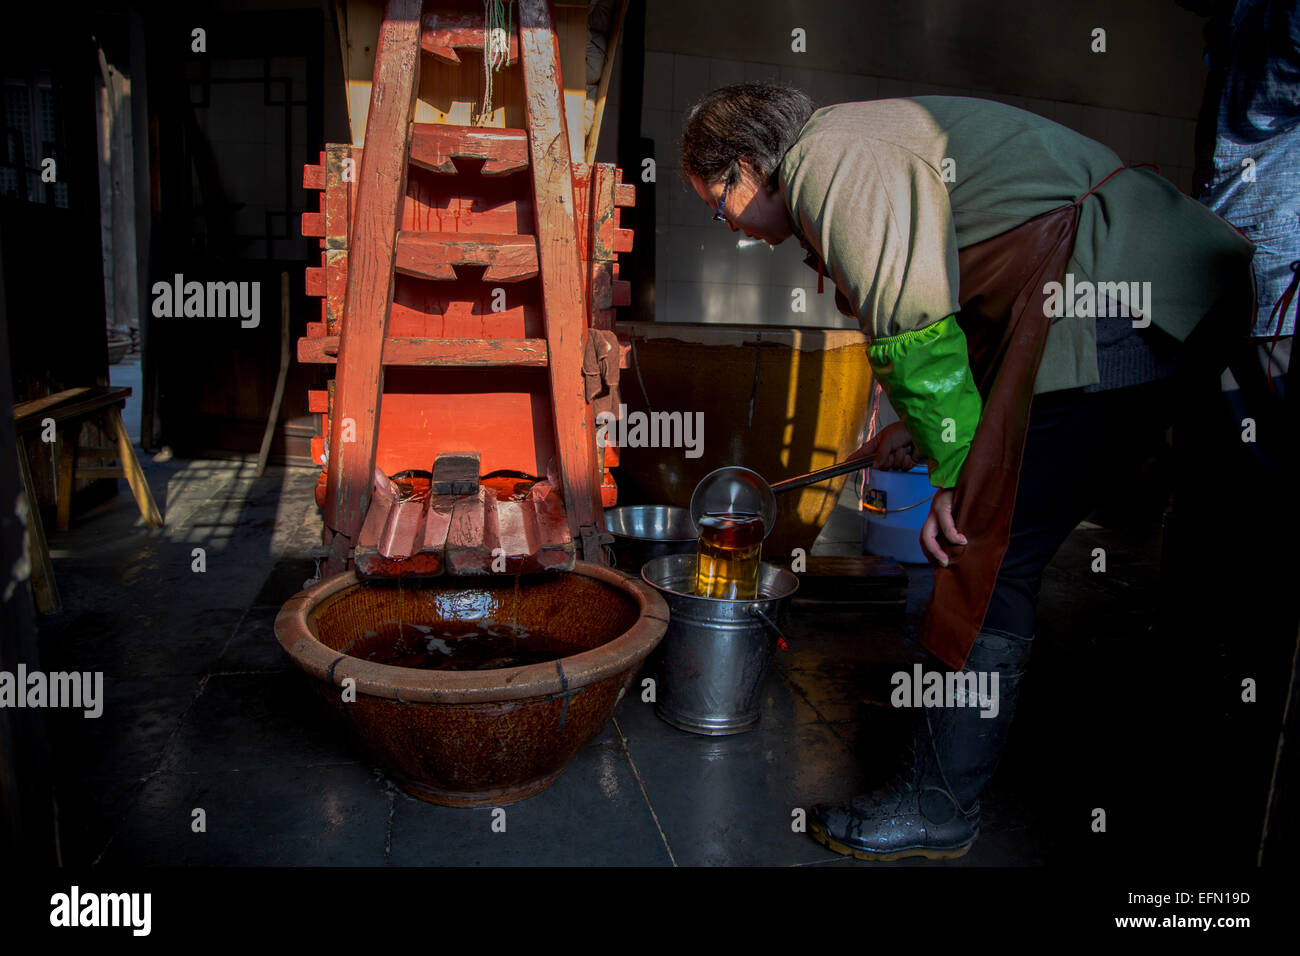 traditional brewing technique of Chinese rice wine: woman is checking the rice wine pressed from fermented mash. - Stock Image